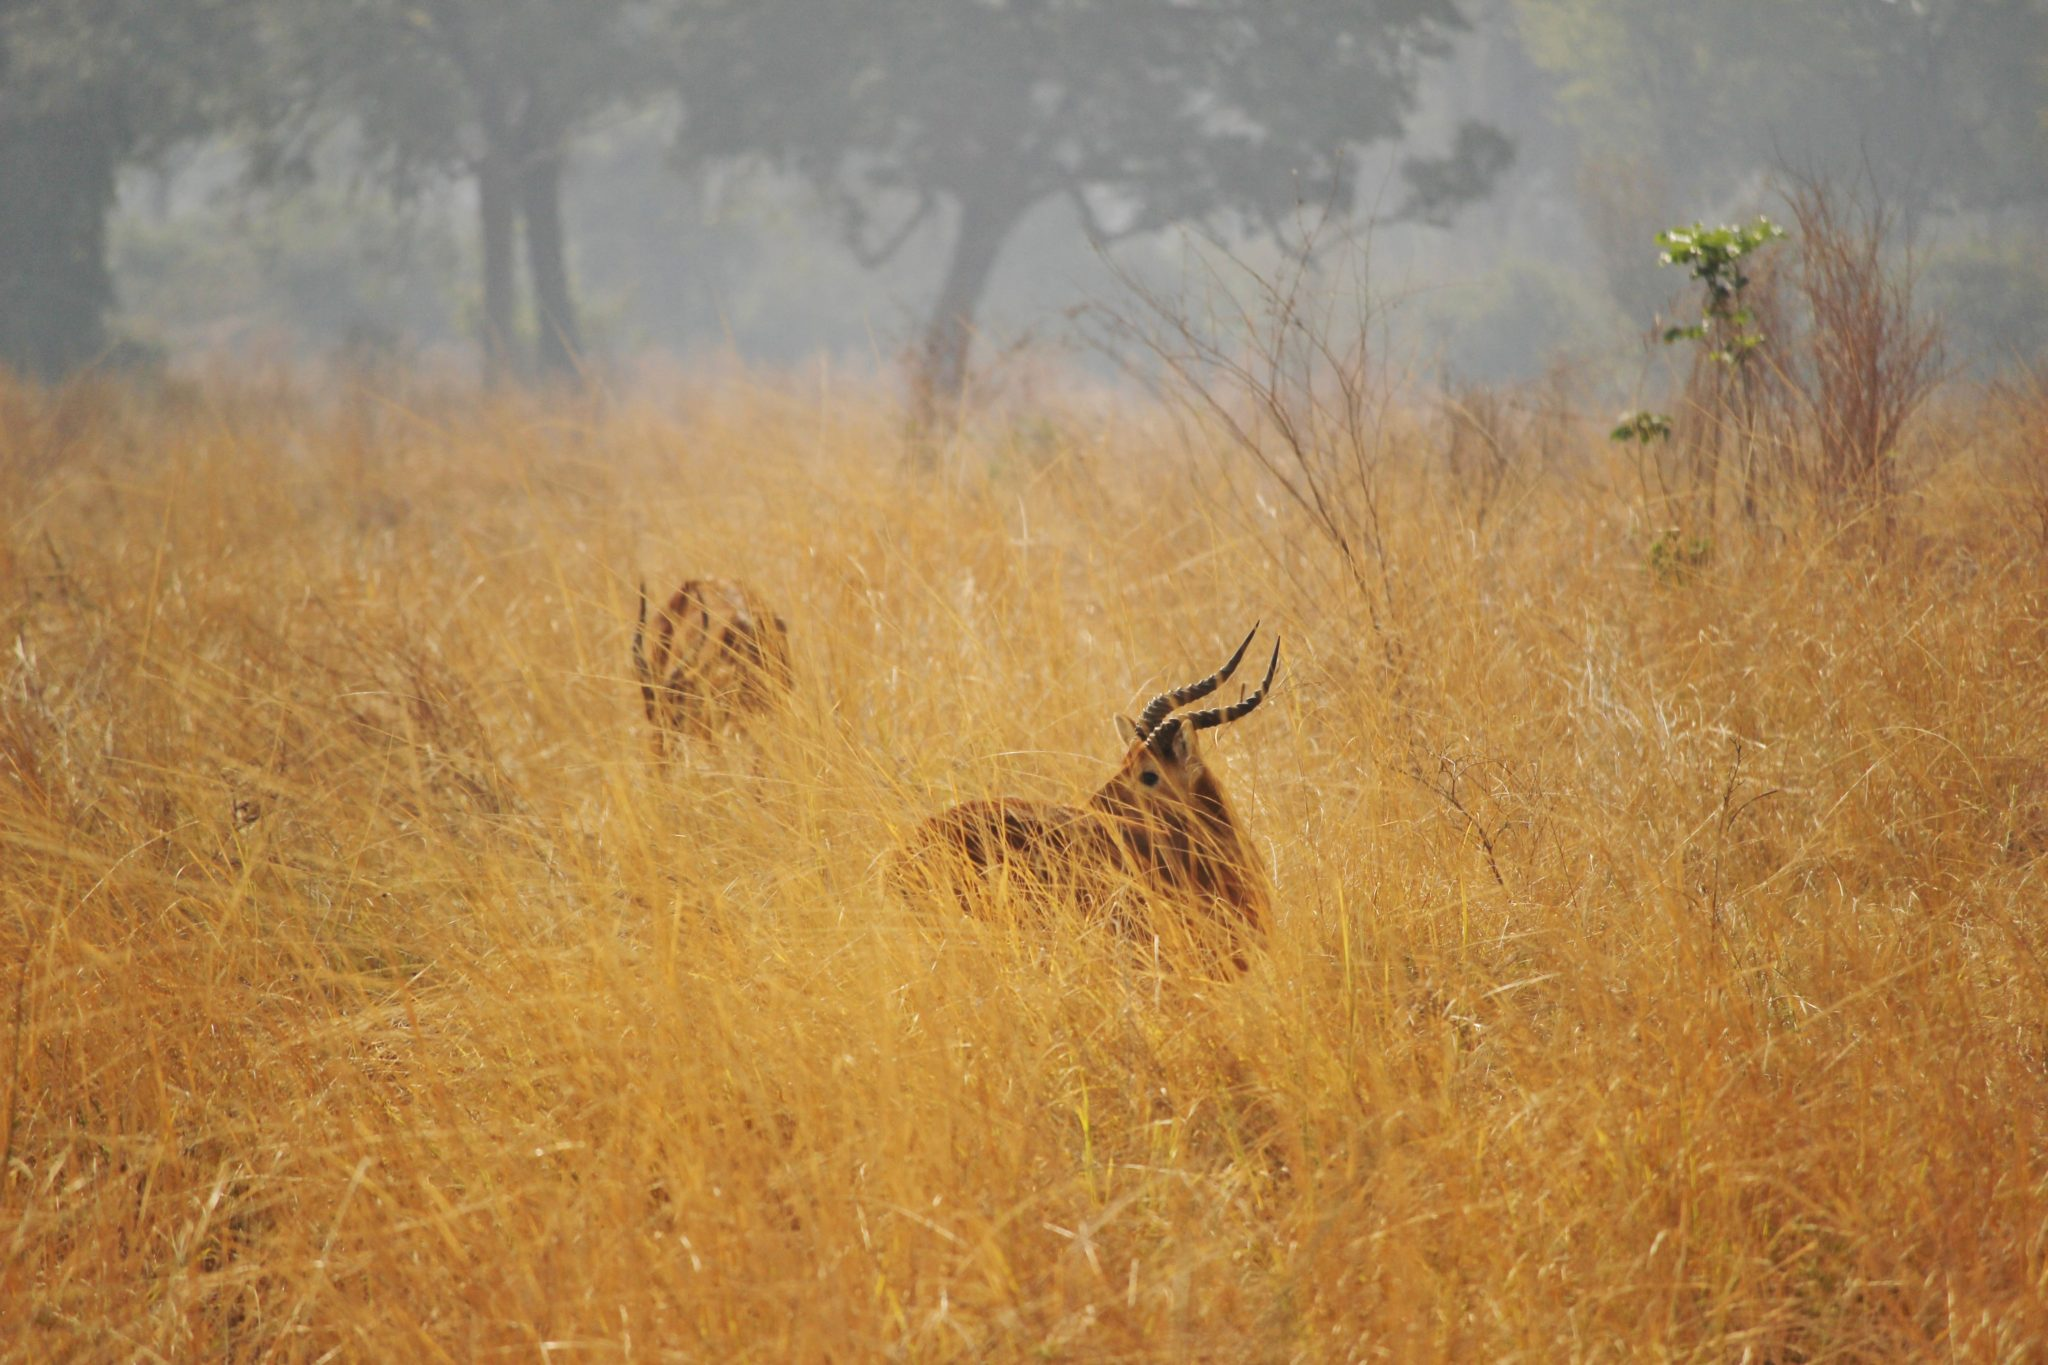 Antelope in long grass, Zambia